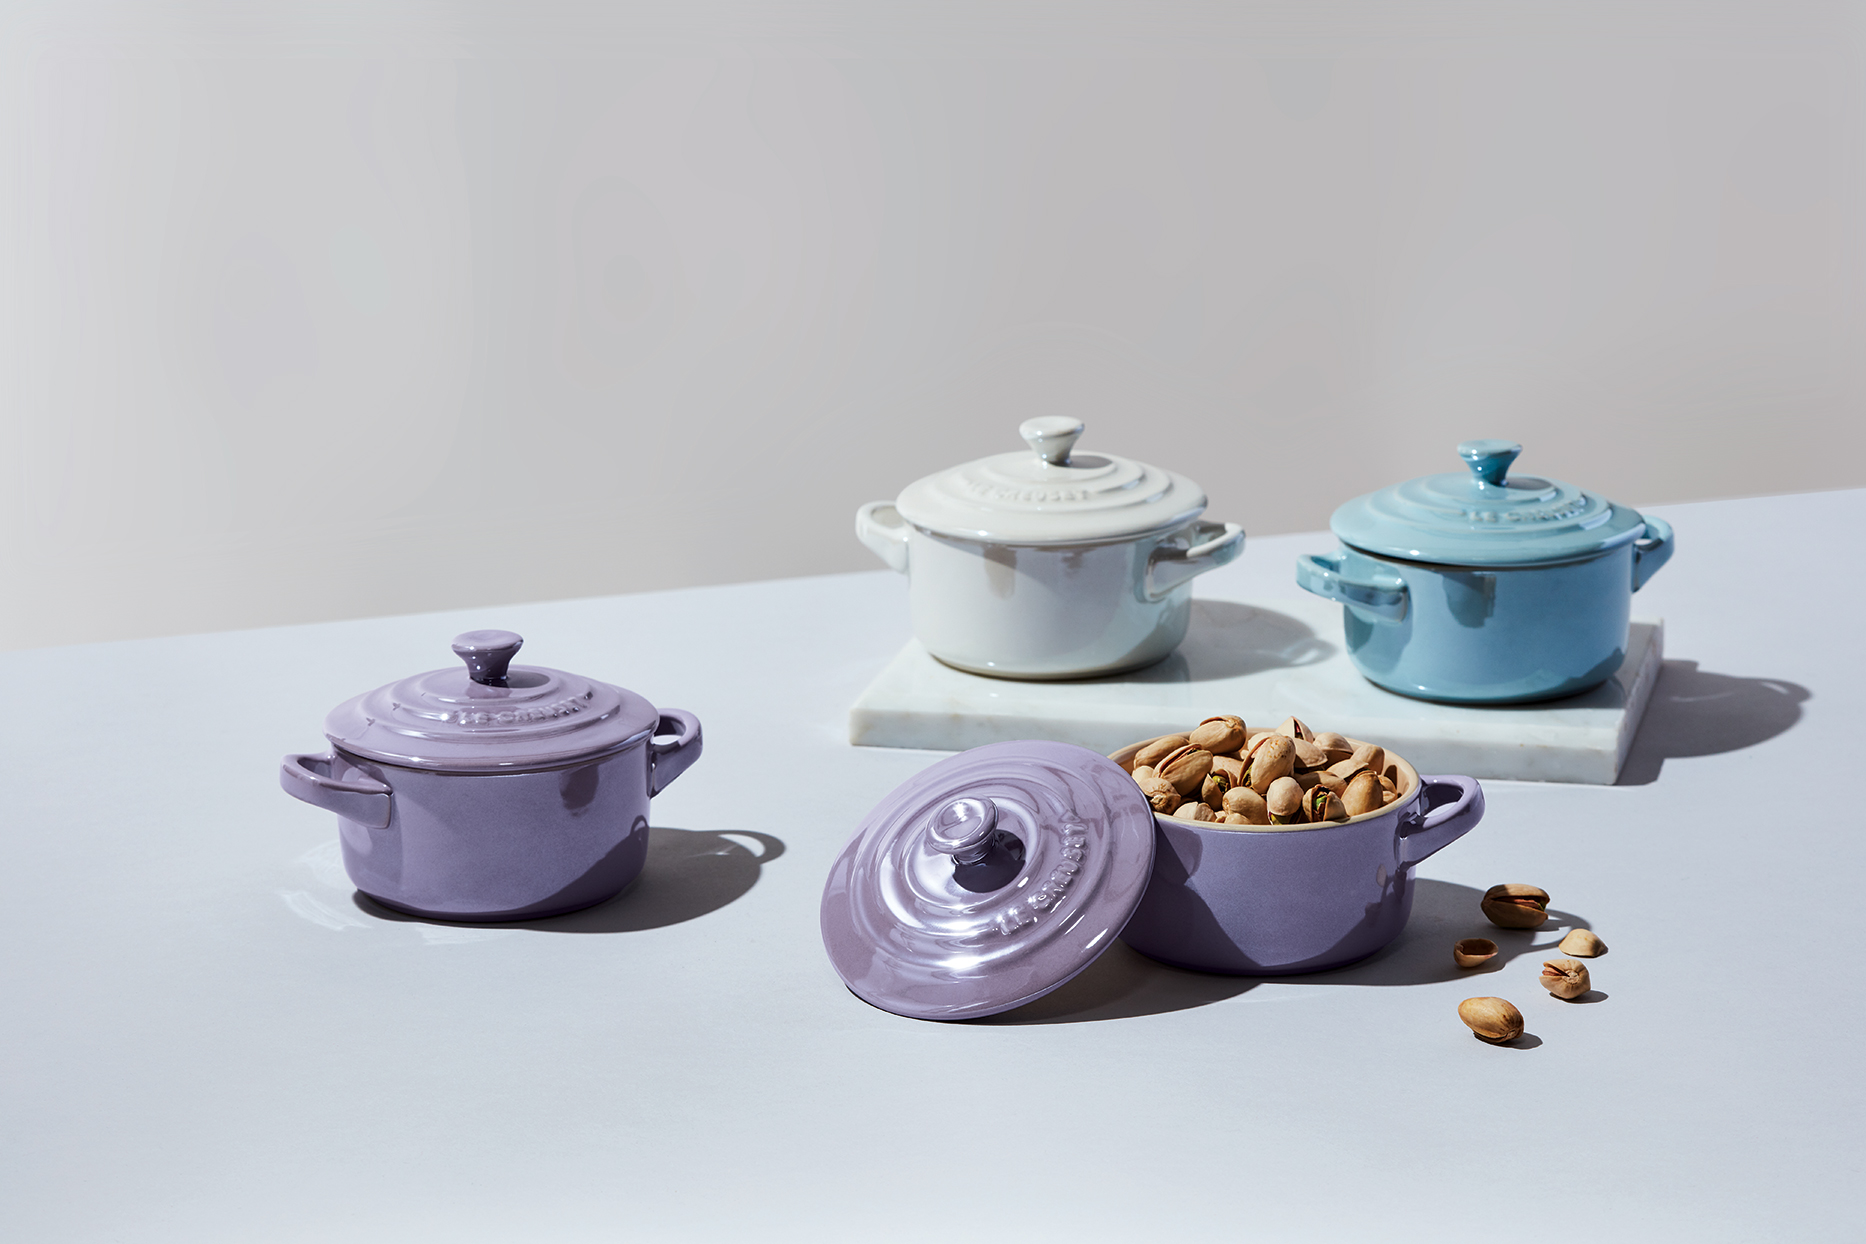 Le Creuset Is Releasing a New Metallic Collection—And Almost Everything Is Under $50